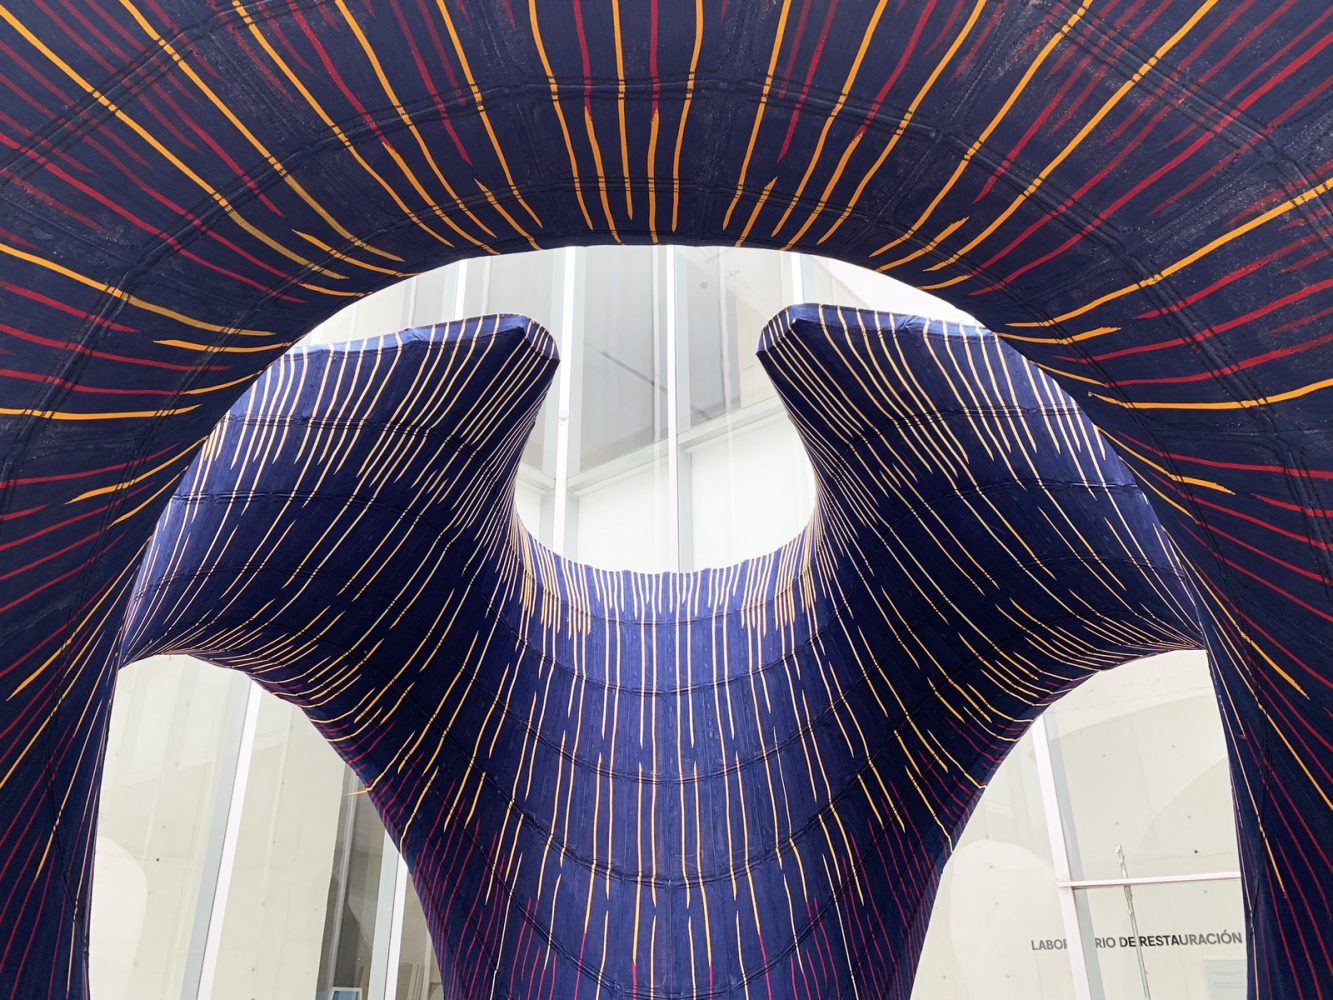 06_ZHA_KnitCandela_Philippe_Block (Copiar)